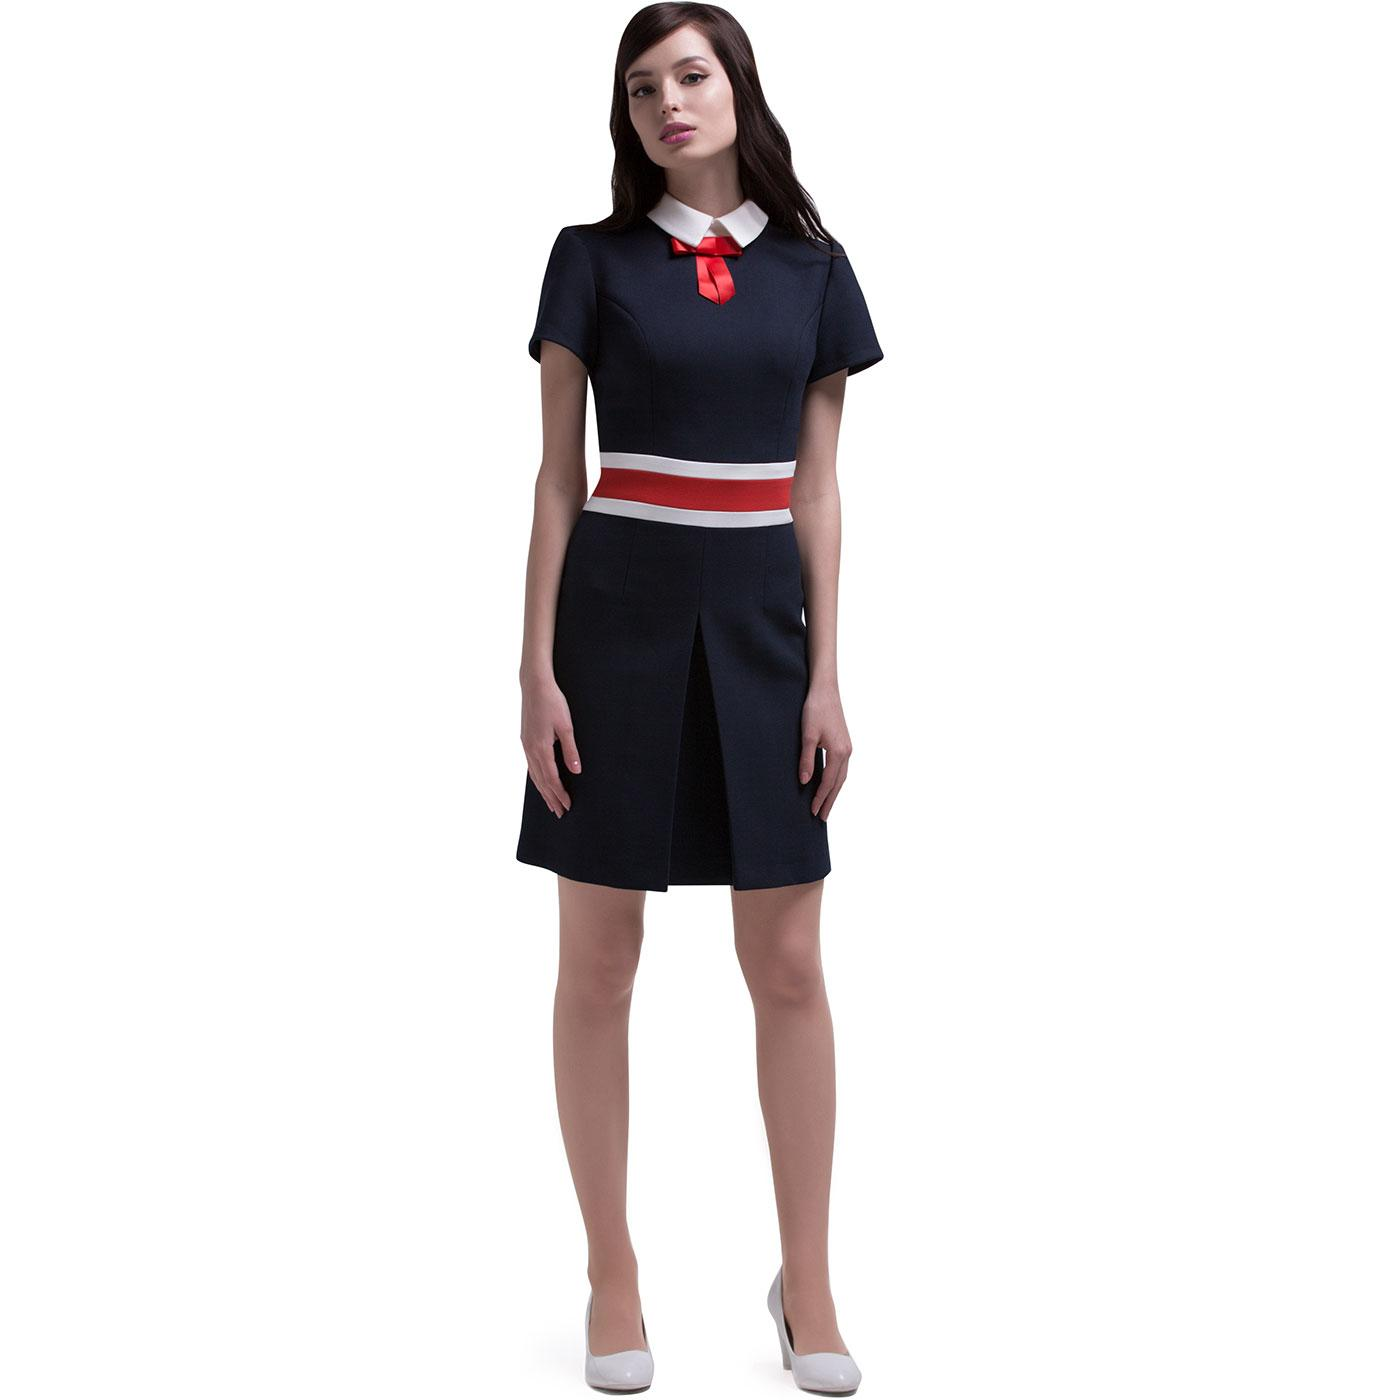 MARMALADE 60s Mod Contrast Stripe Collared Dress